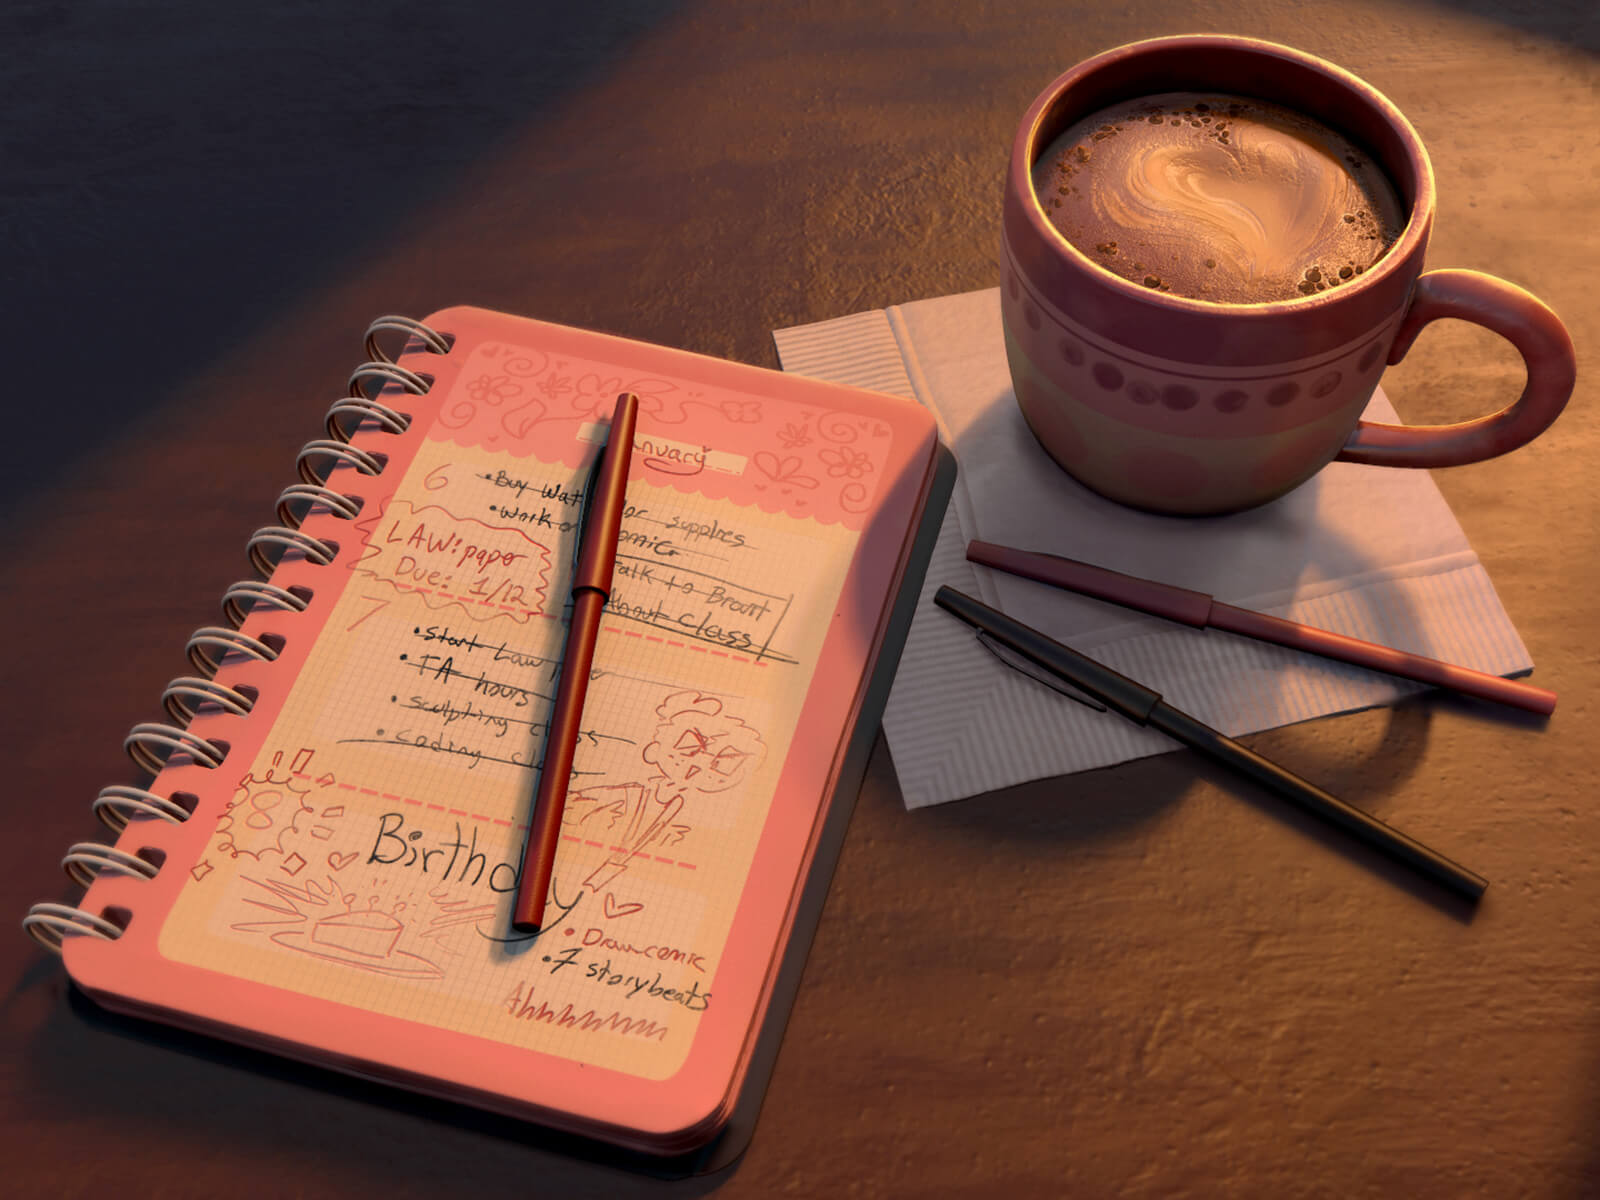 A diary and a cup of coffee